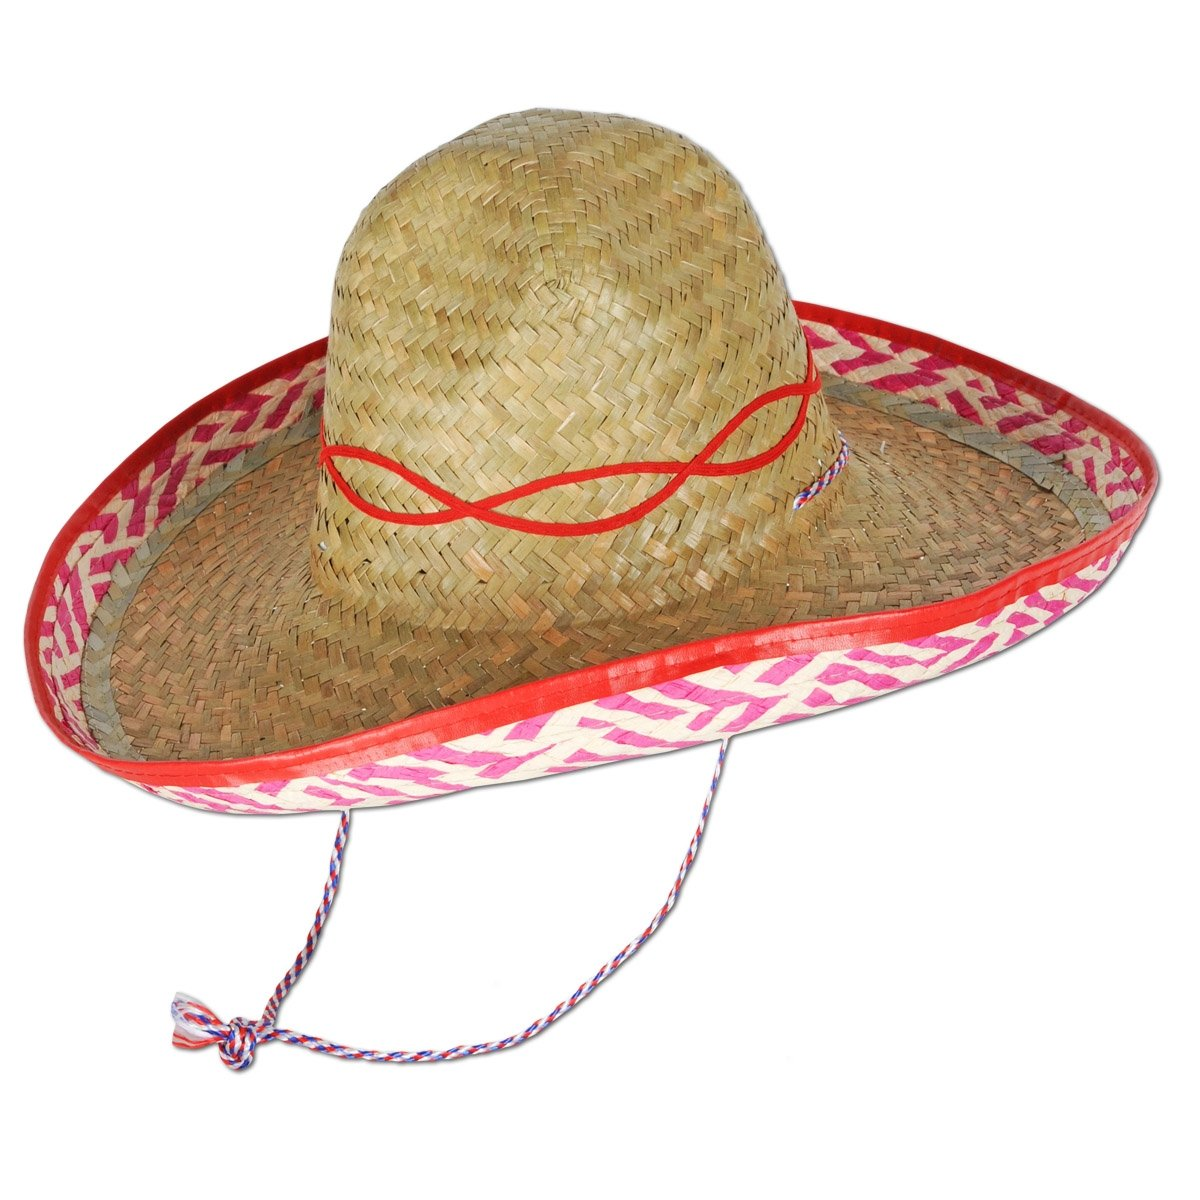 Beistle 60623 48-Pack Sombreros by Beistle